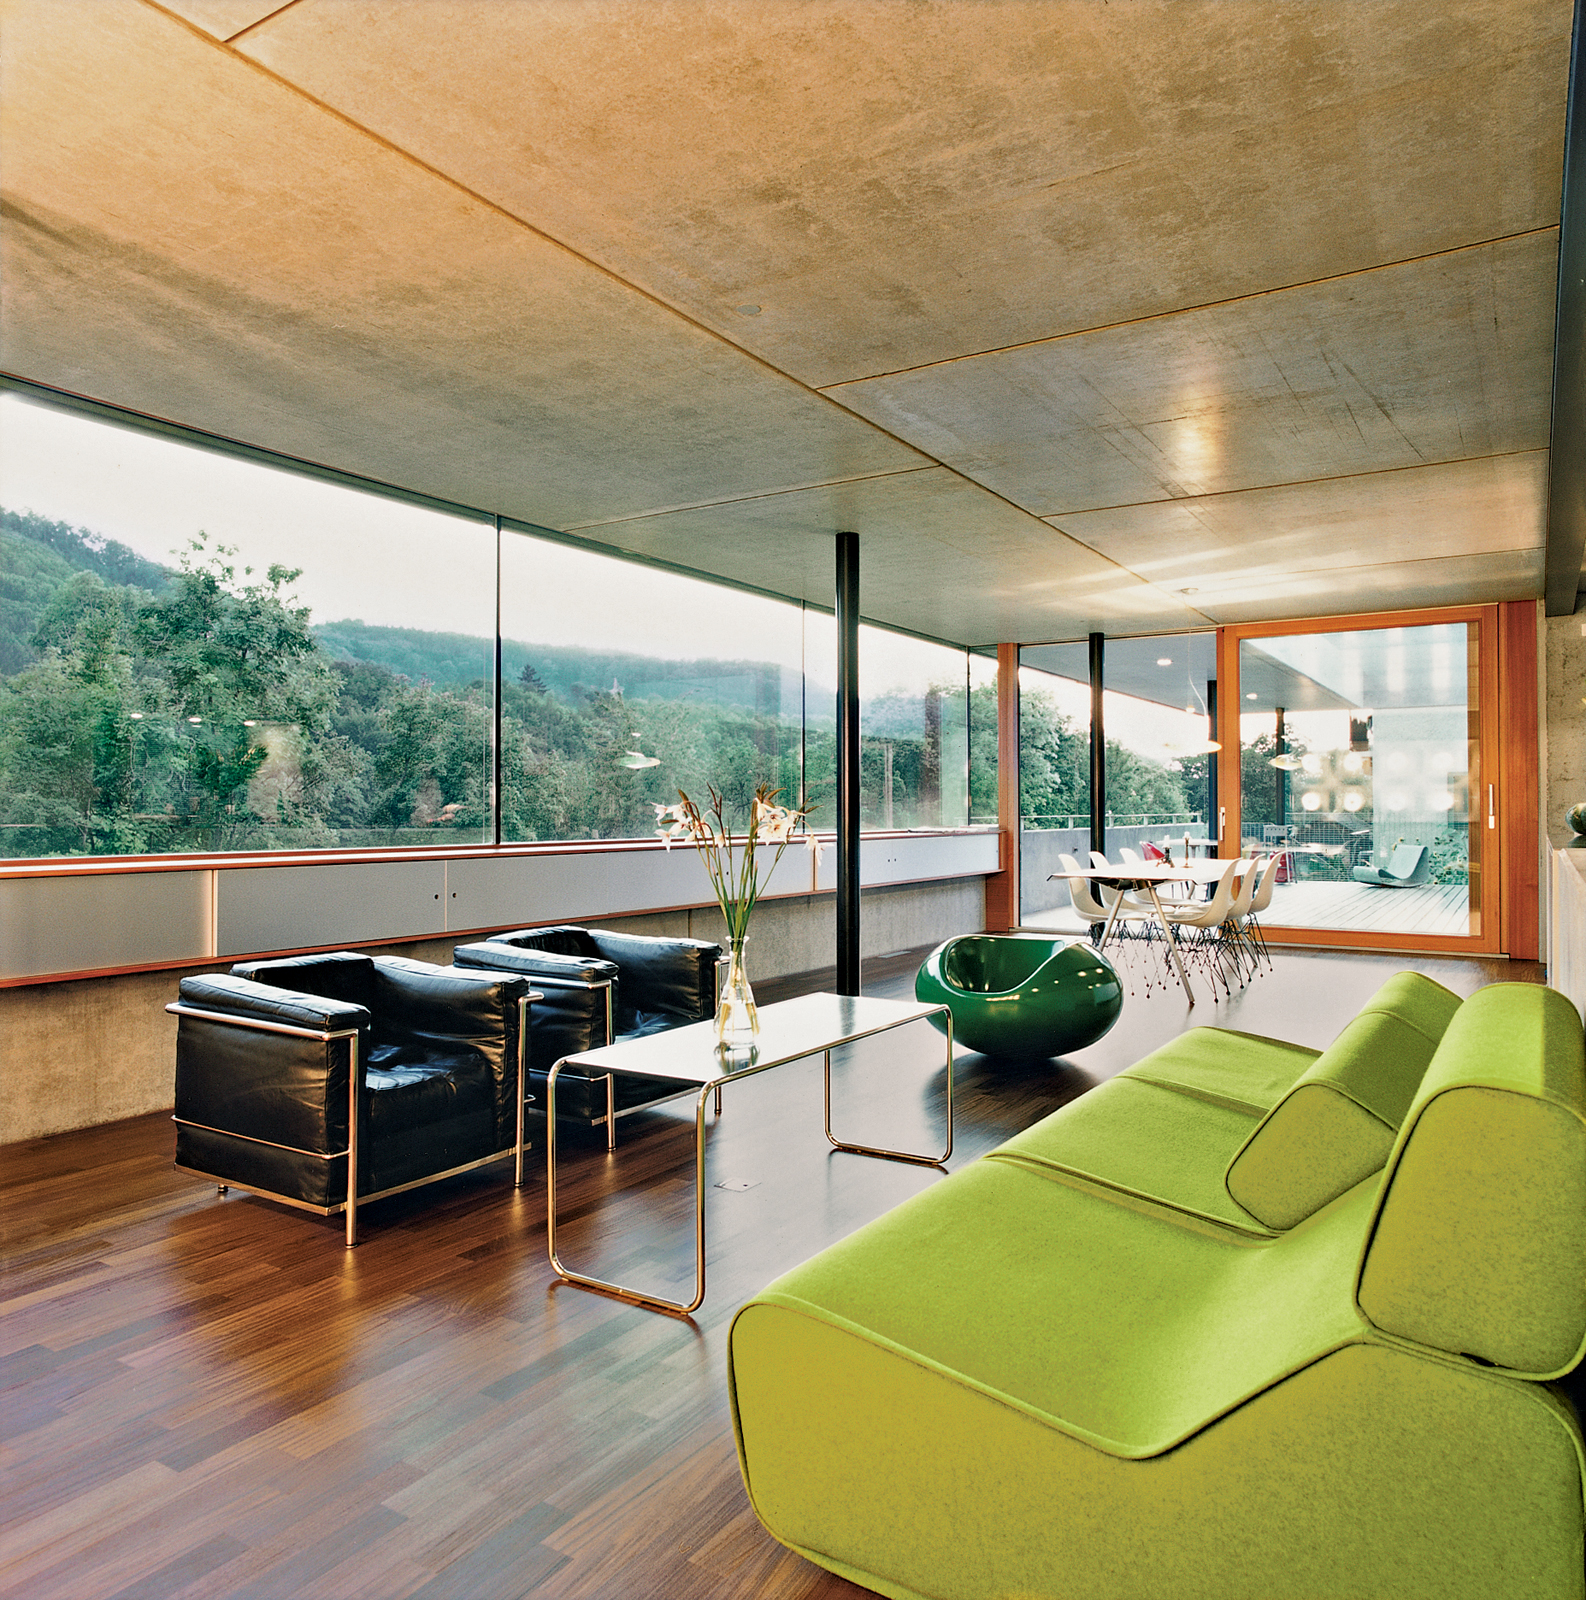 After walking through the front door visitors enter directly into the enormous kitchen and living space. The interior is minimal, using predominantly timber and concrete. It also provides some spectacular views of the river.